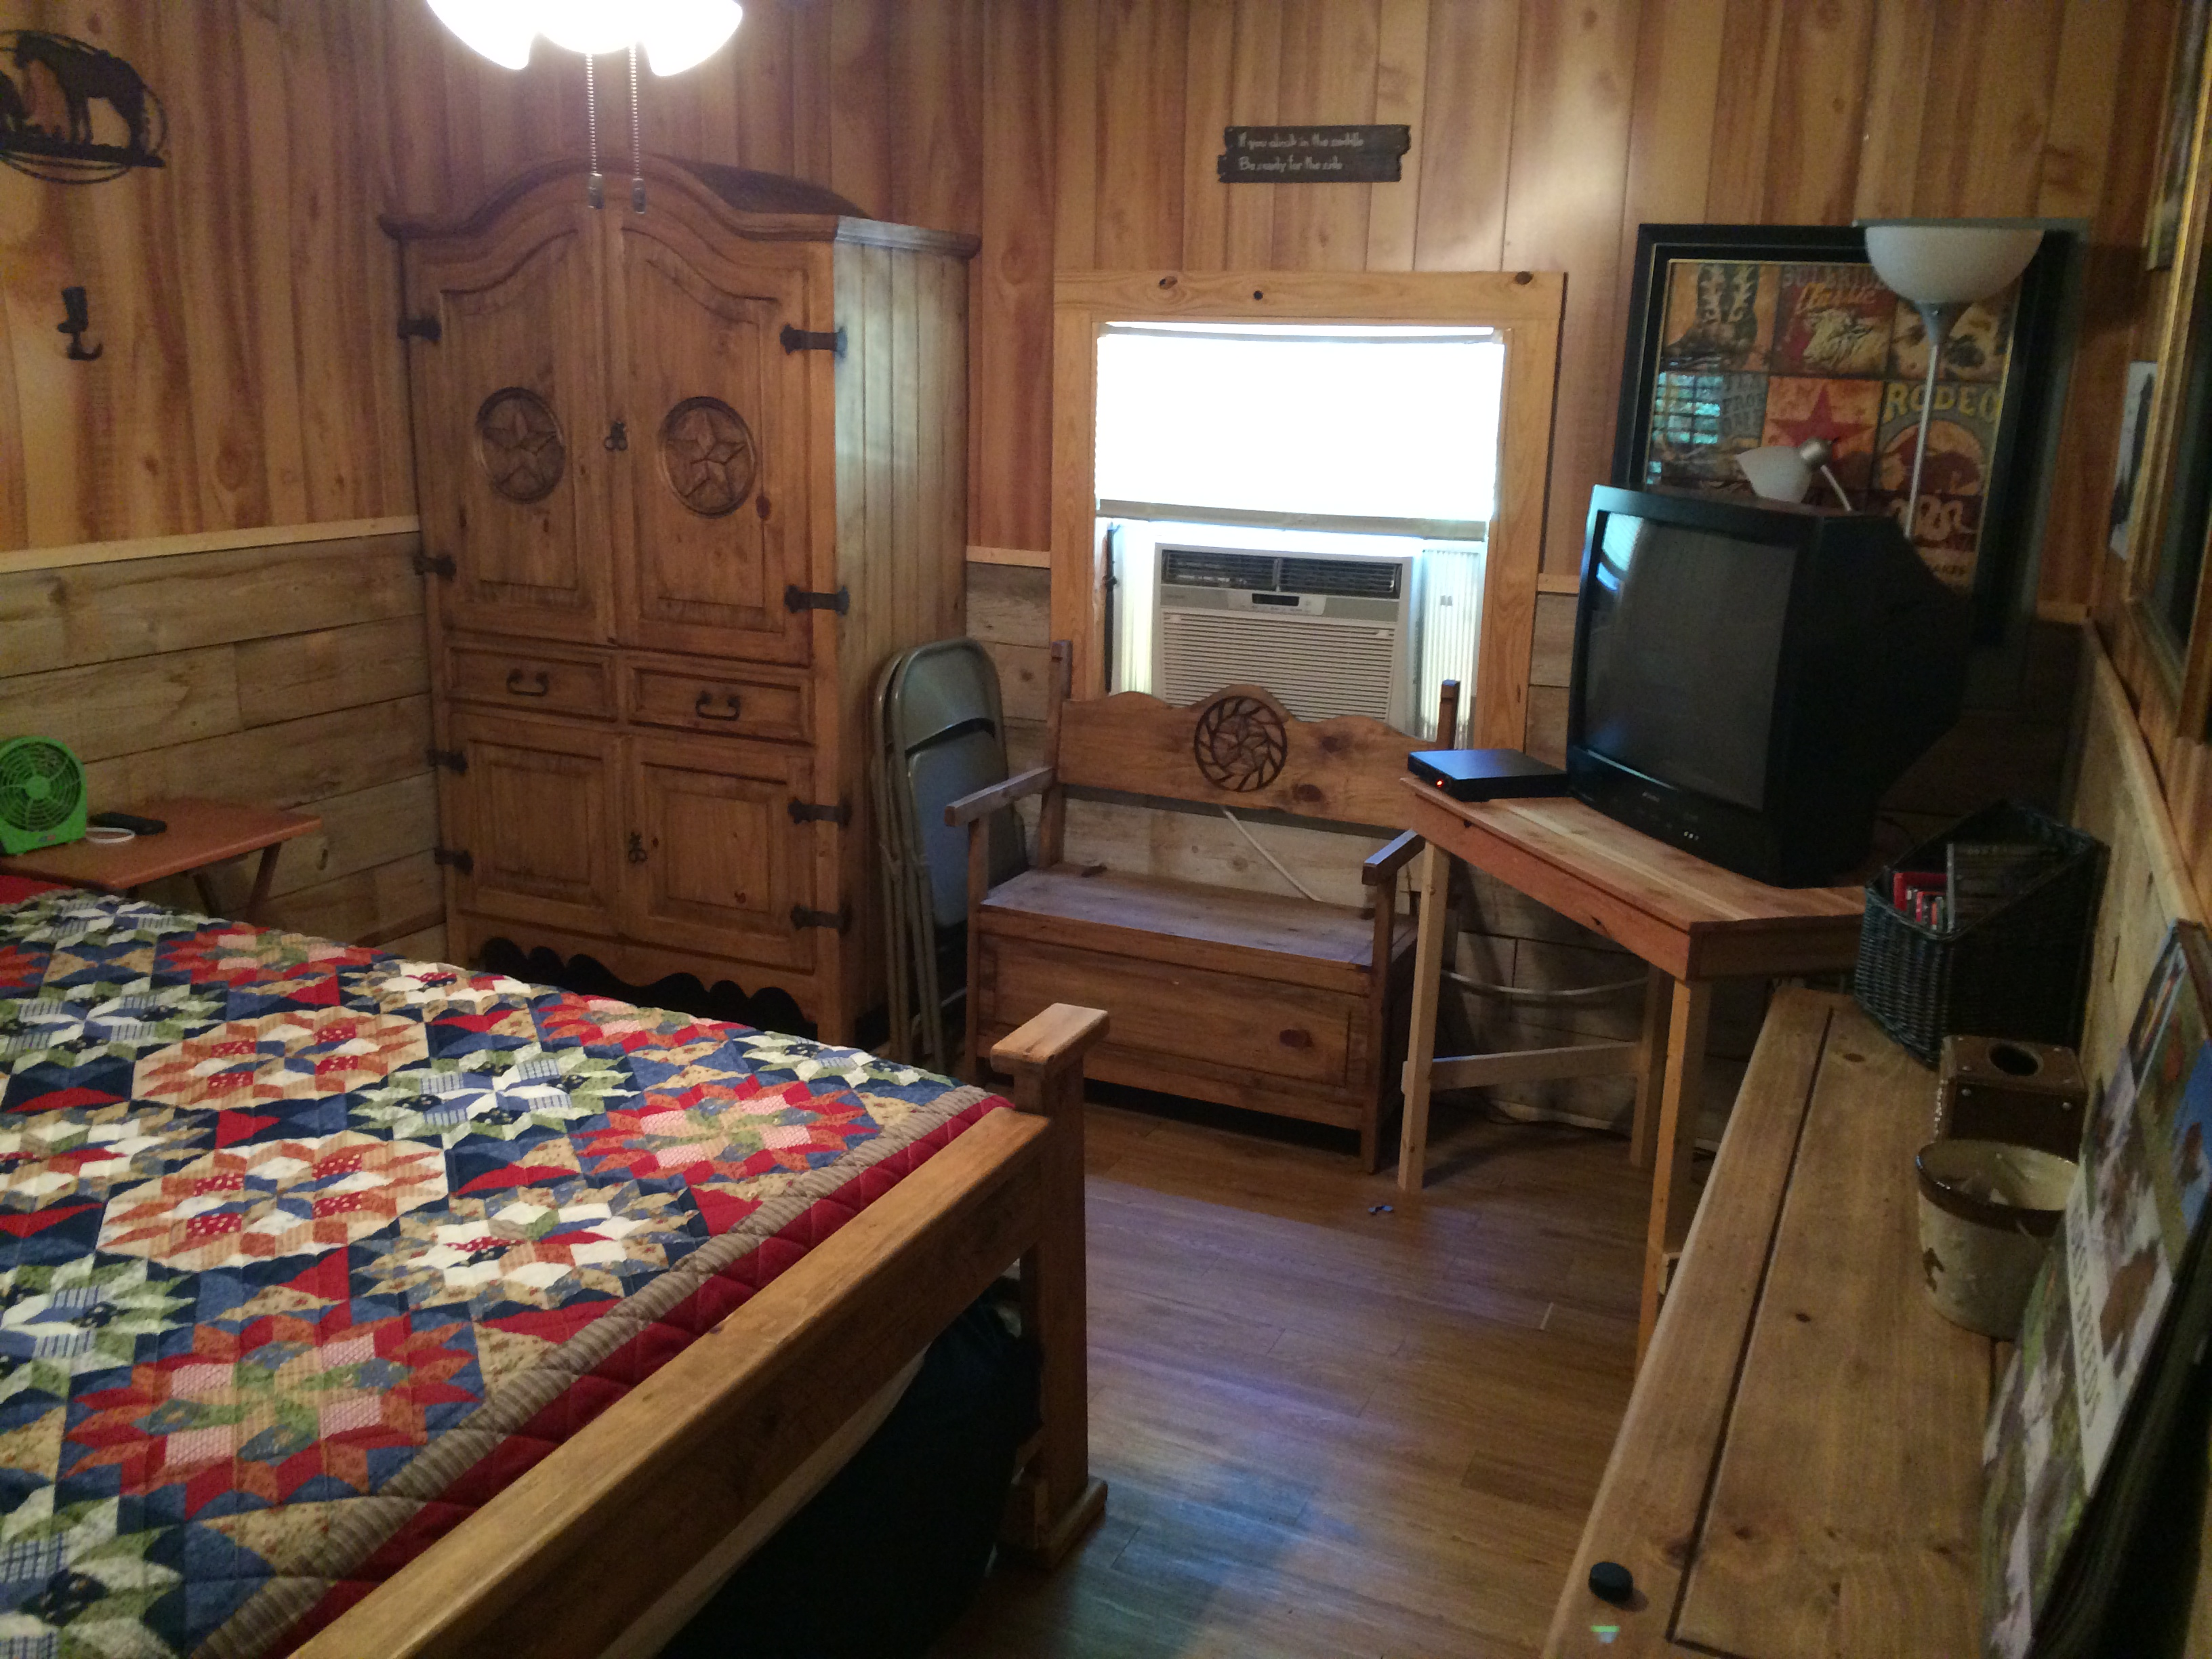 Cabin Creek Clothing: Cabin Creek Cabins: Tyler, Lindale